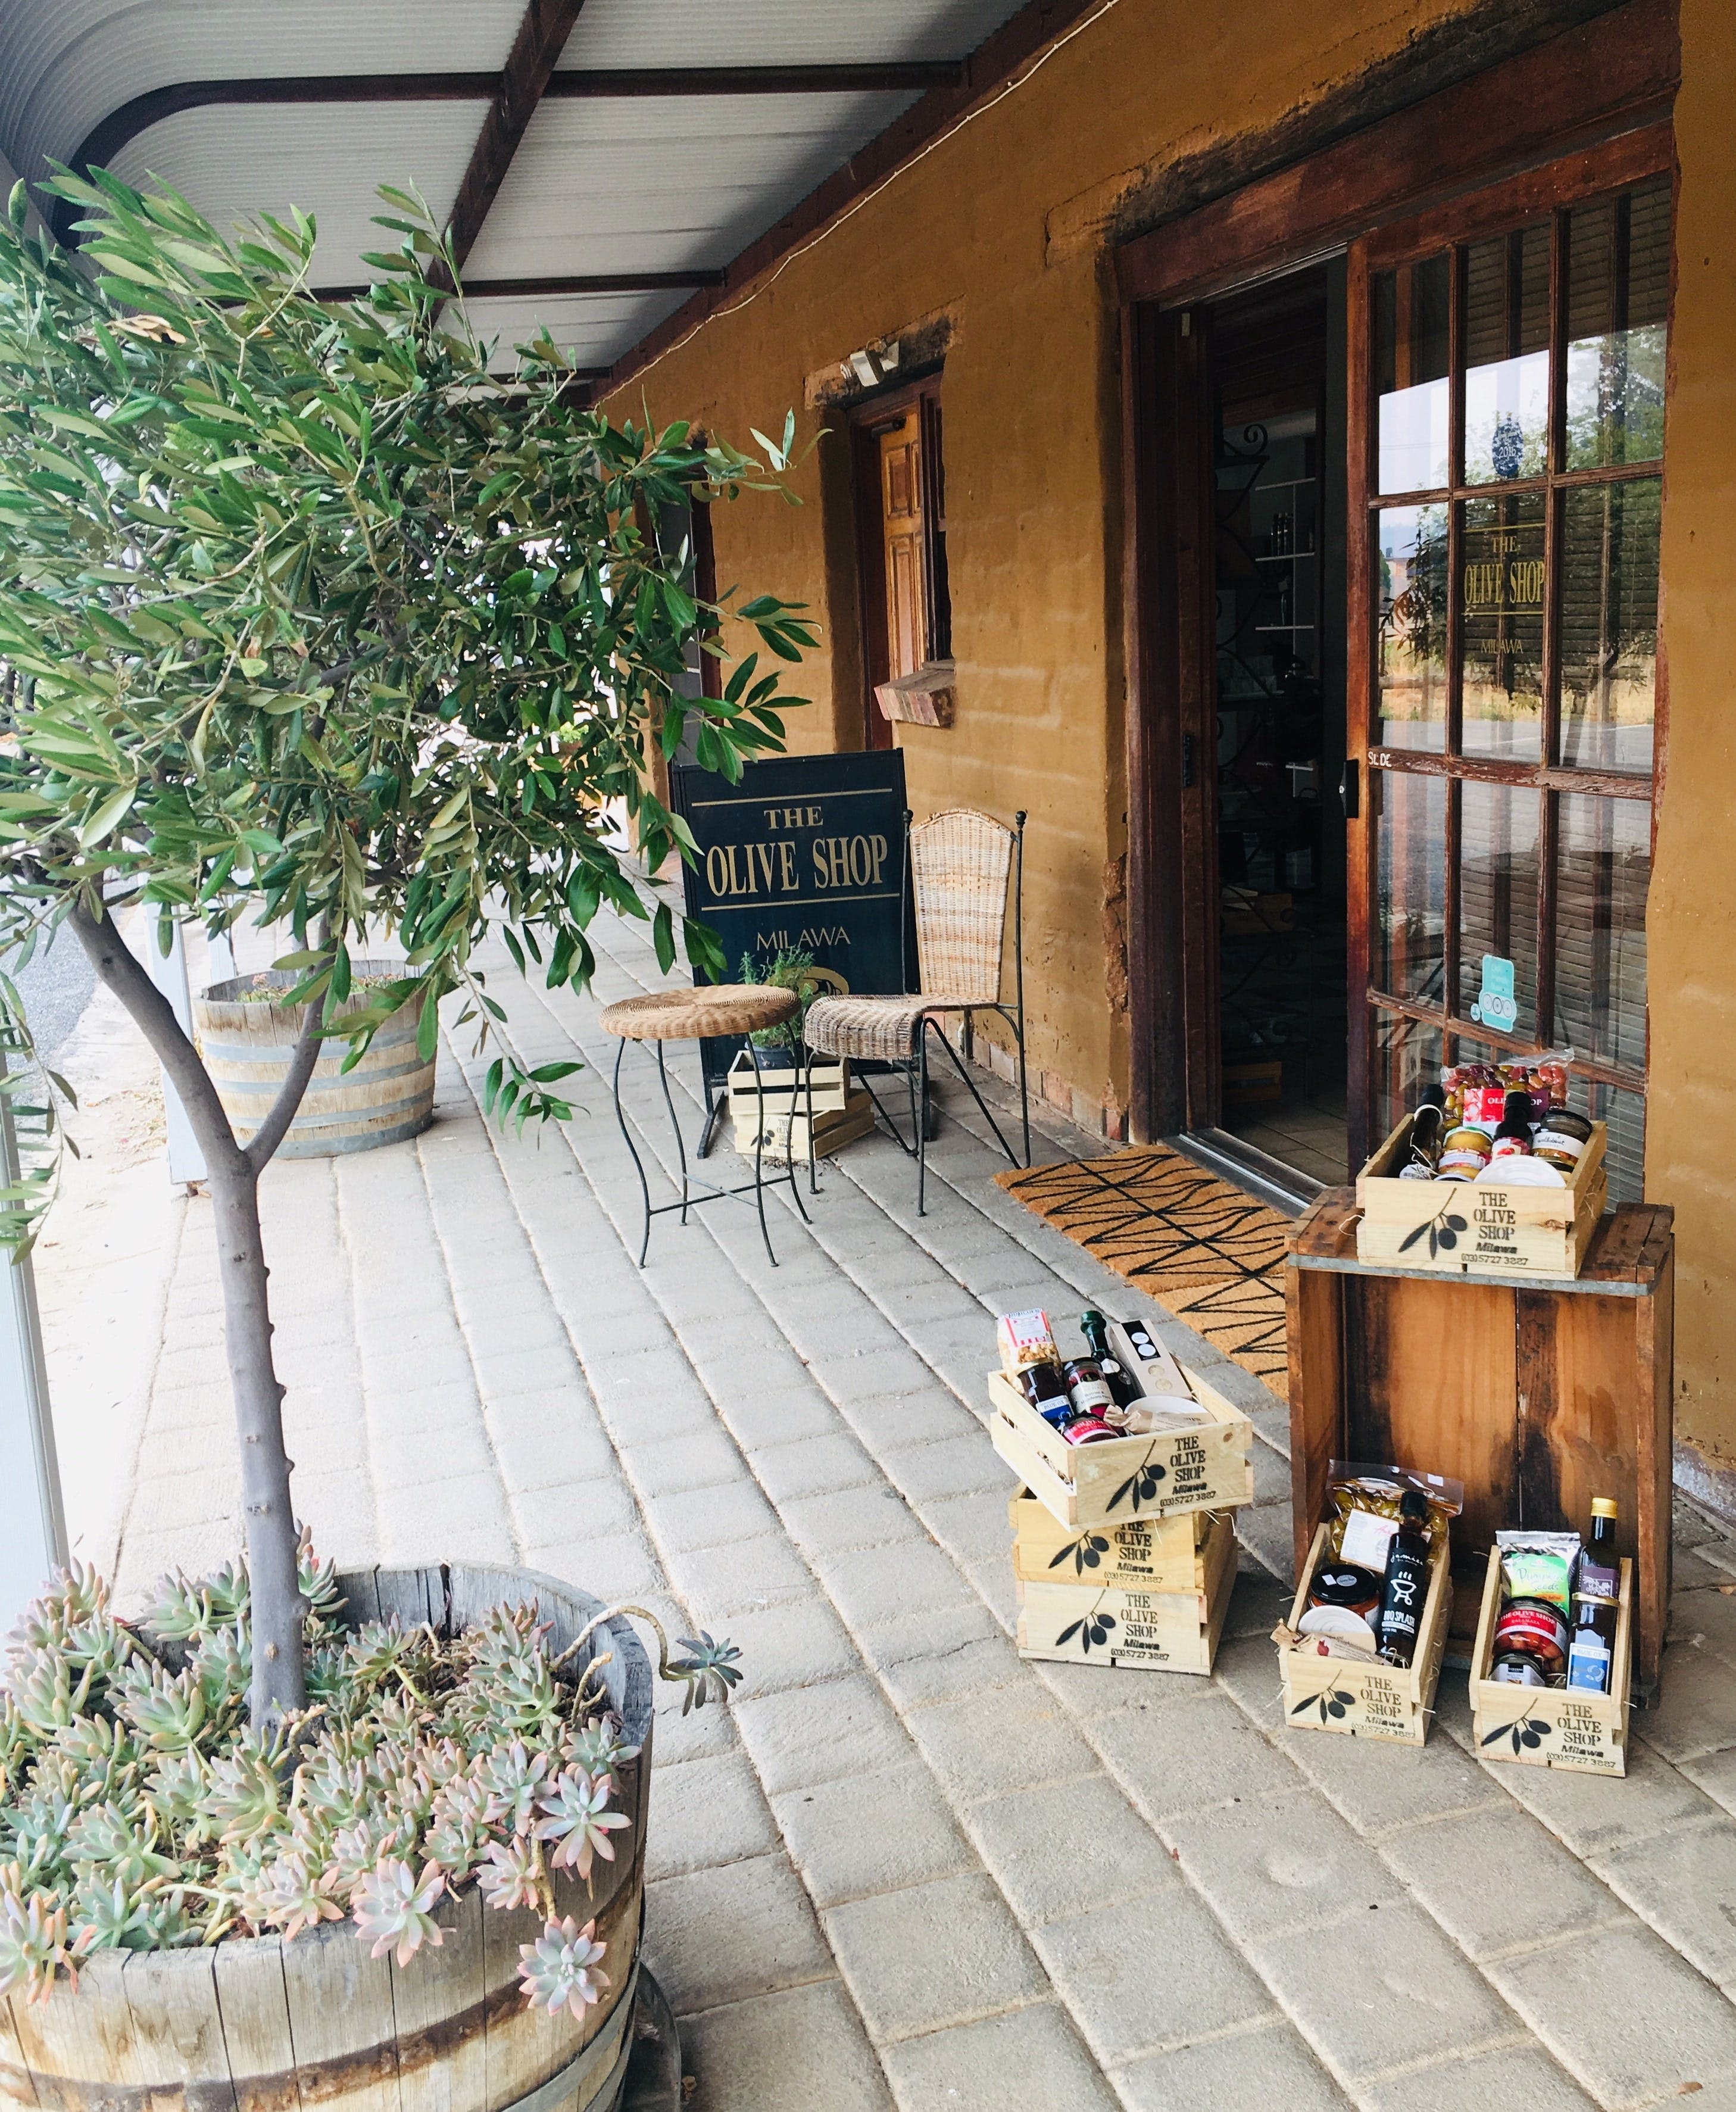 The Olive Shop - Milawa - Victoria Tourism